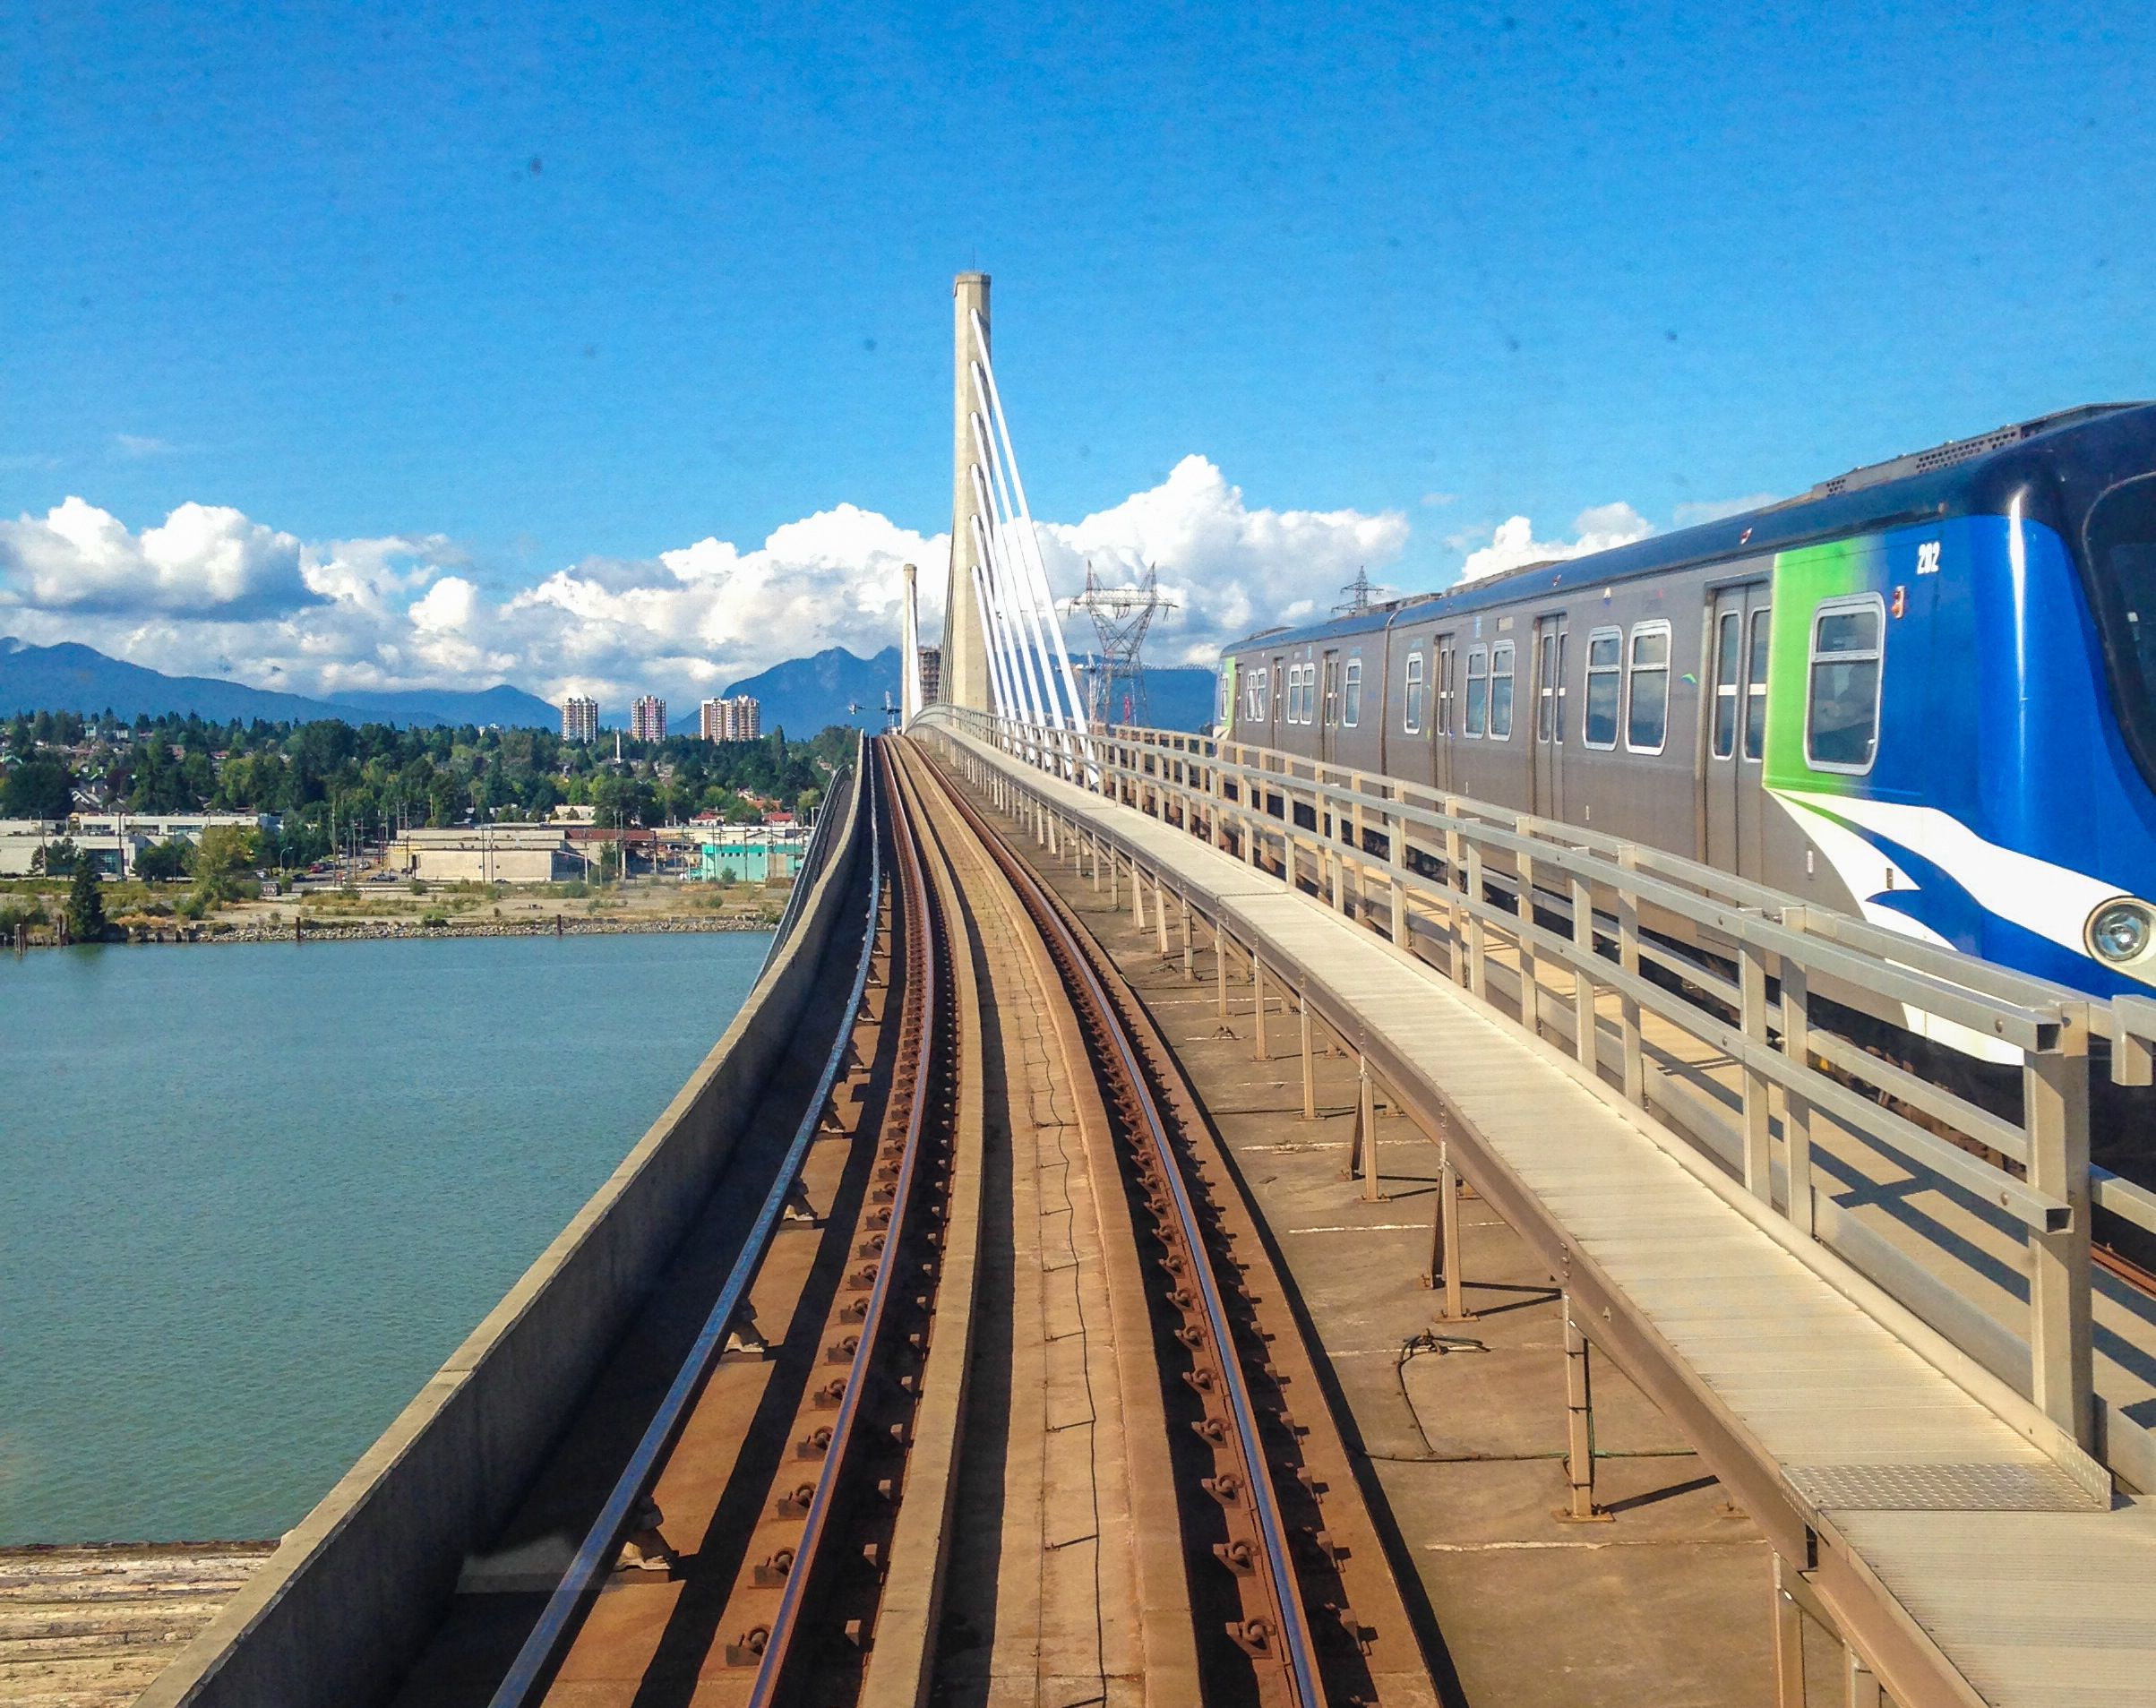 Explore Vancouver Bc On The Canada Line Skytrain